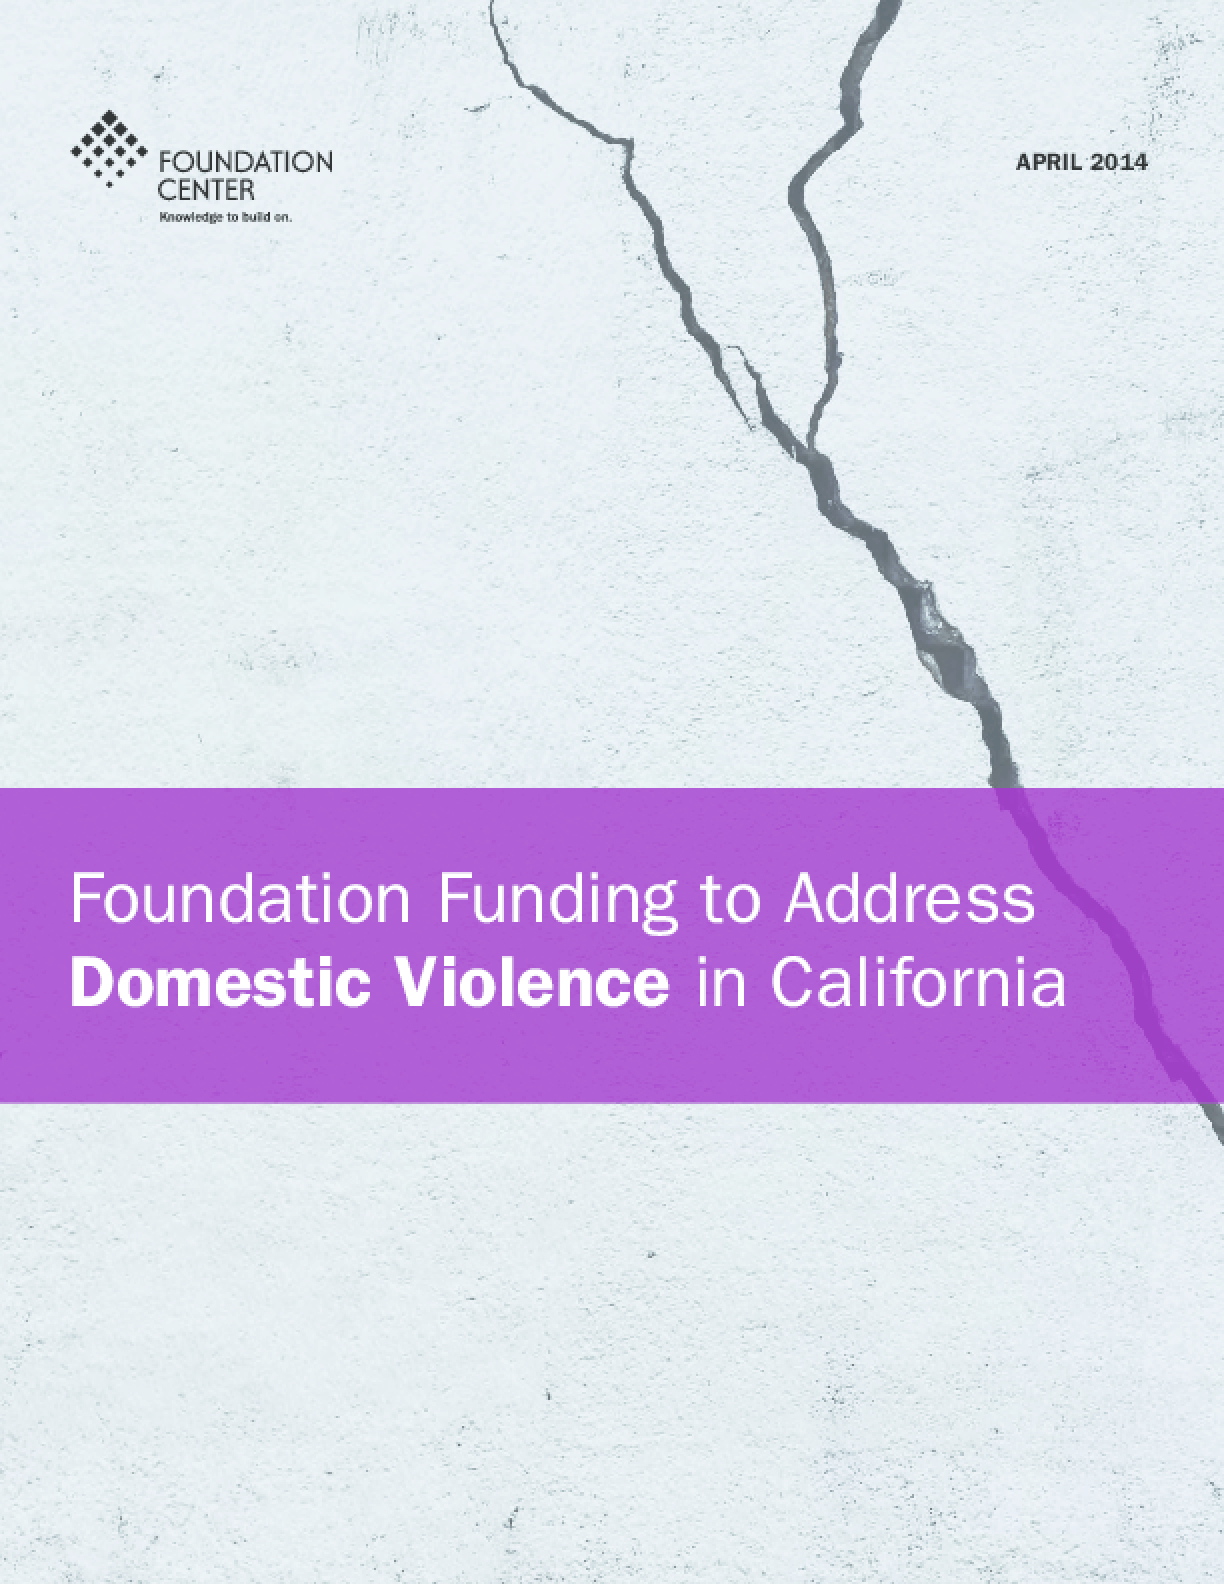 Foundation Funding to Address Domestic Violence in California